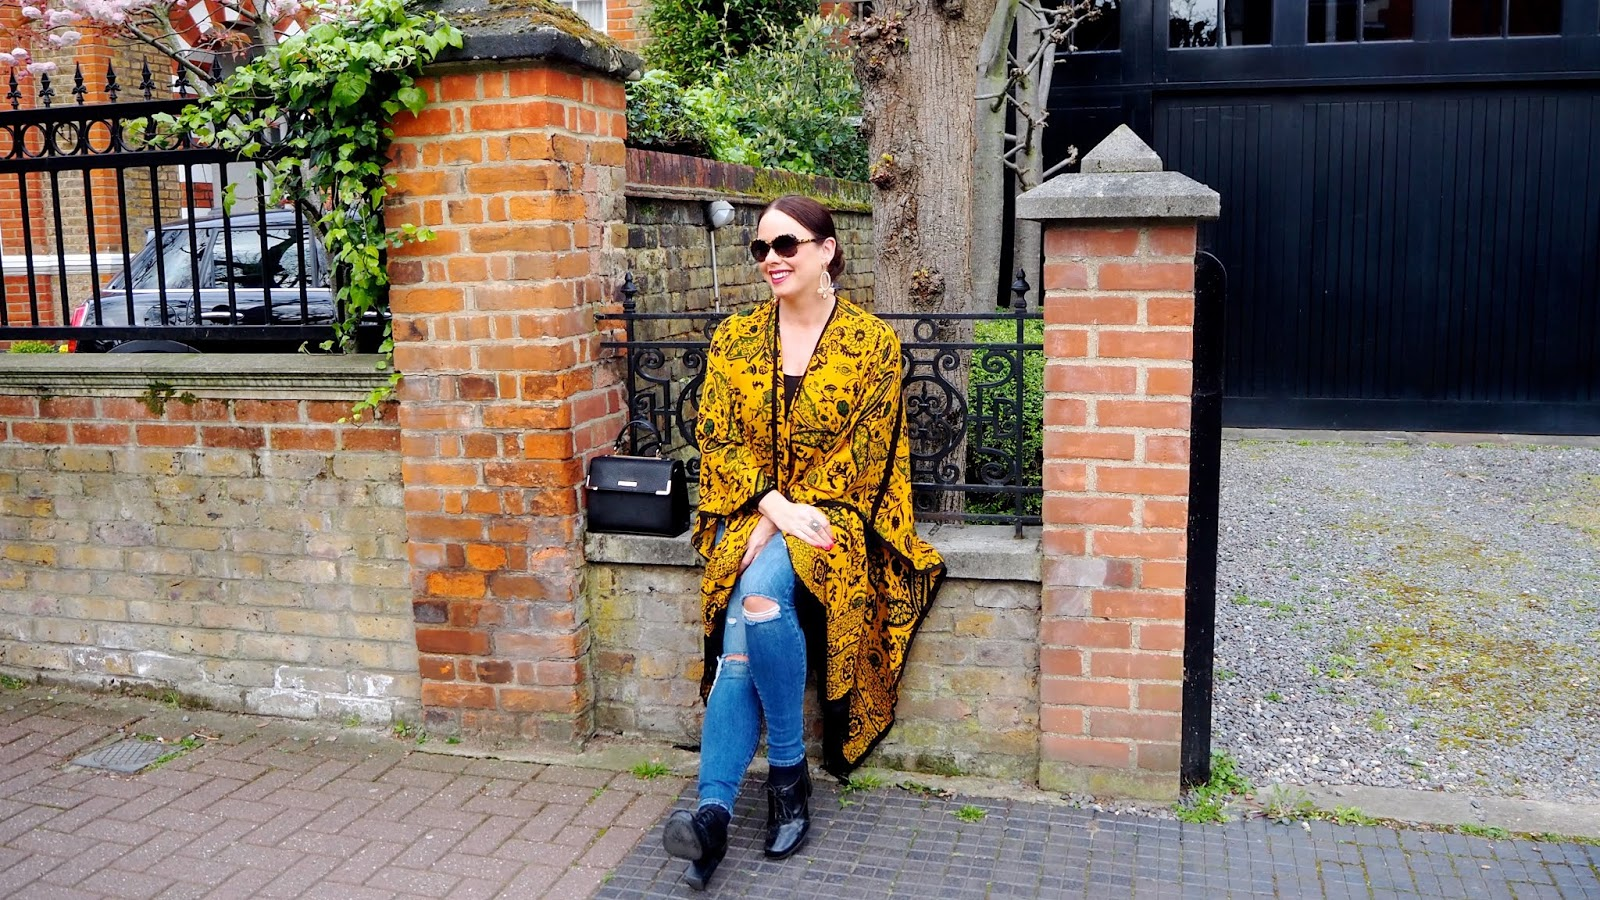 Mustard paisley kimono cape with black fringe trim with ripped jeans